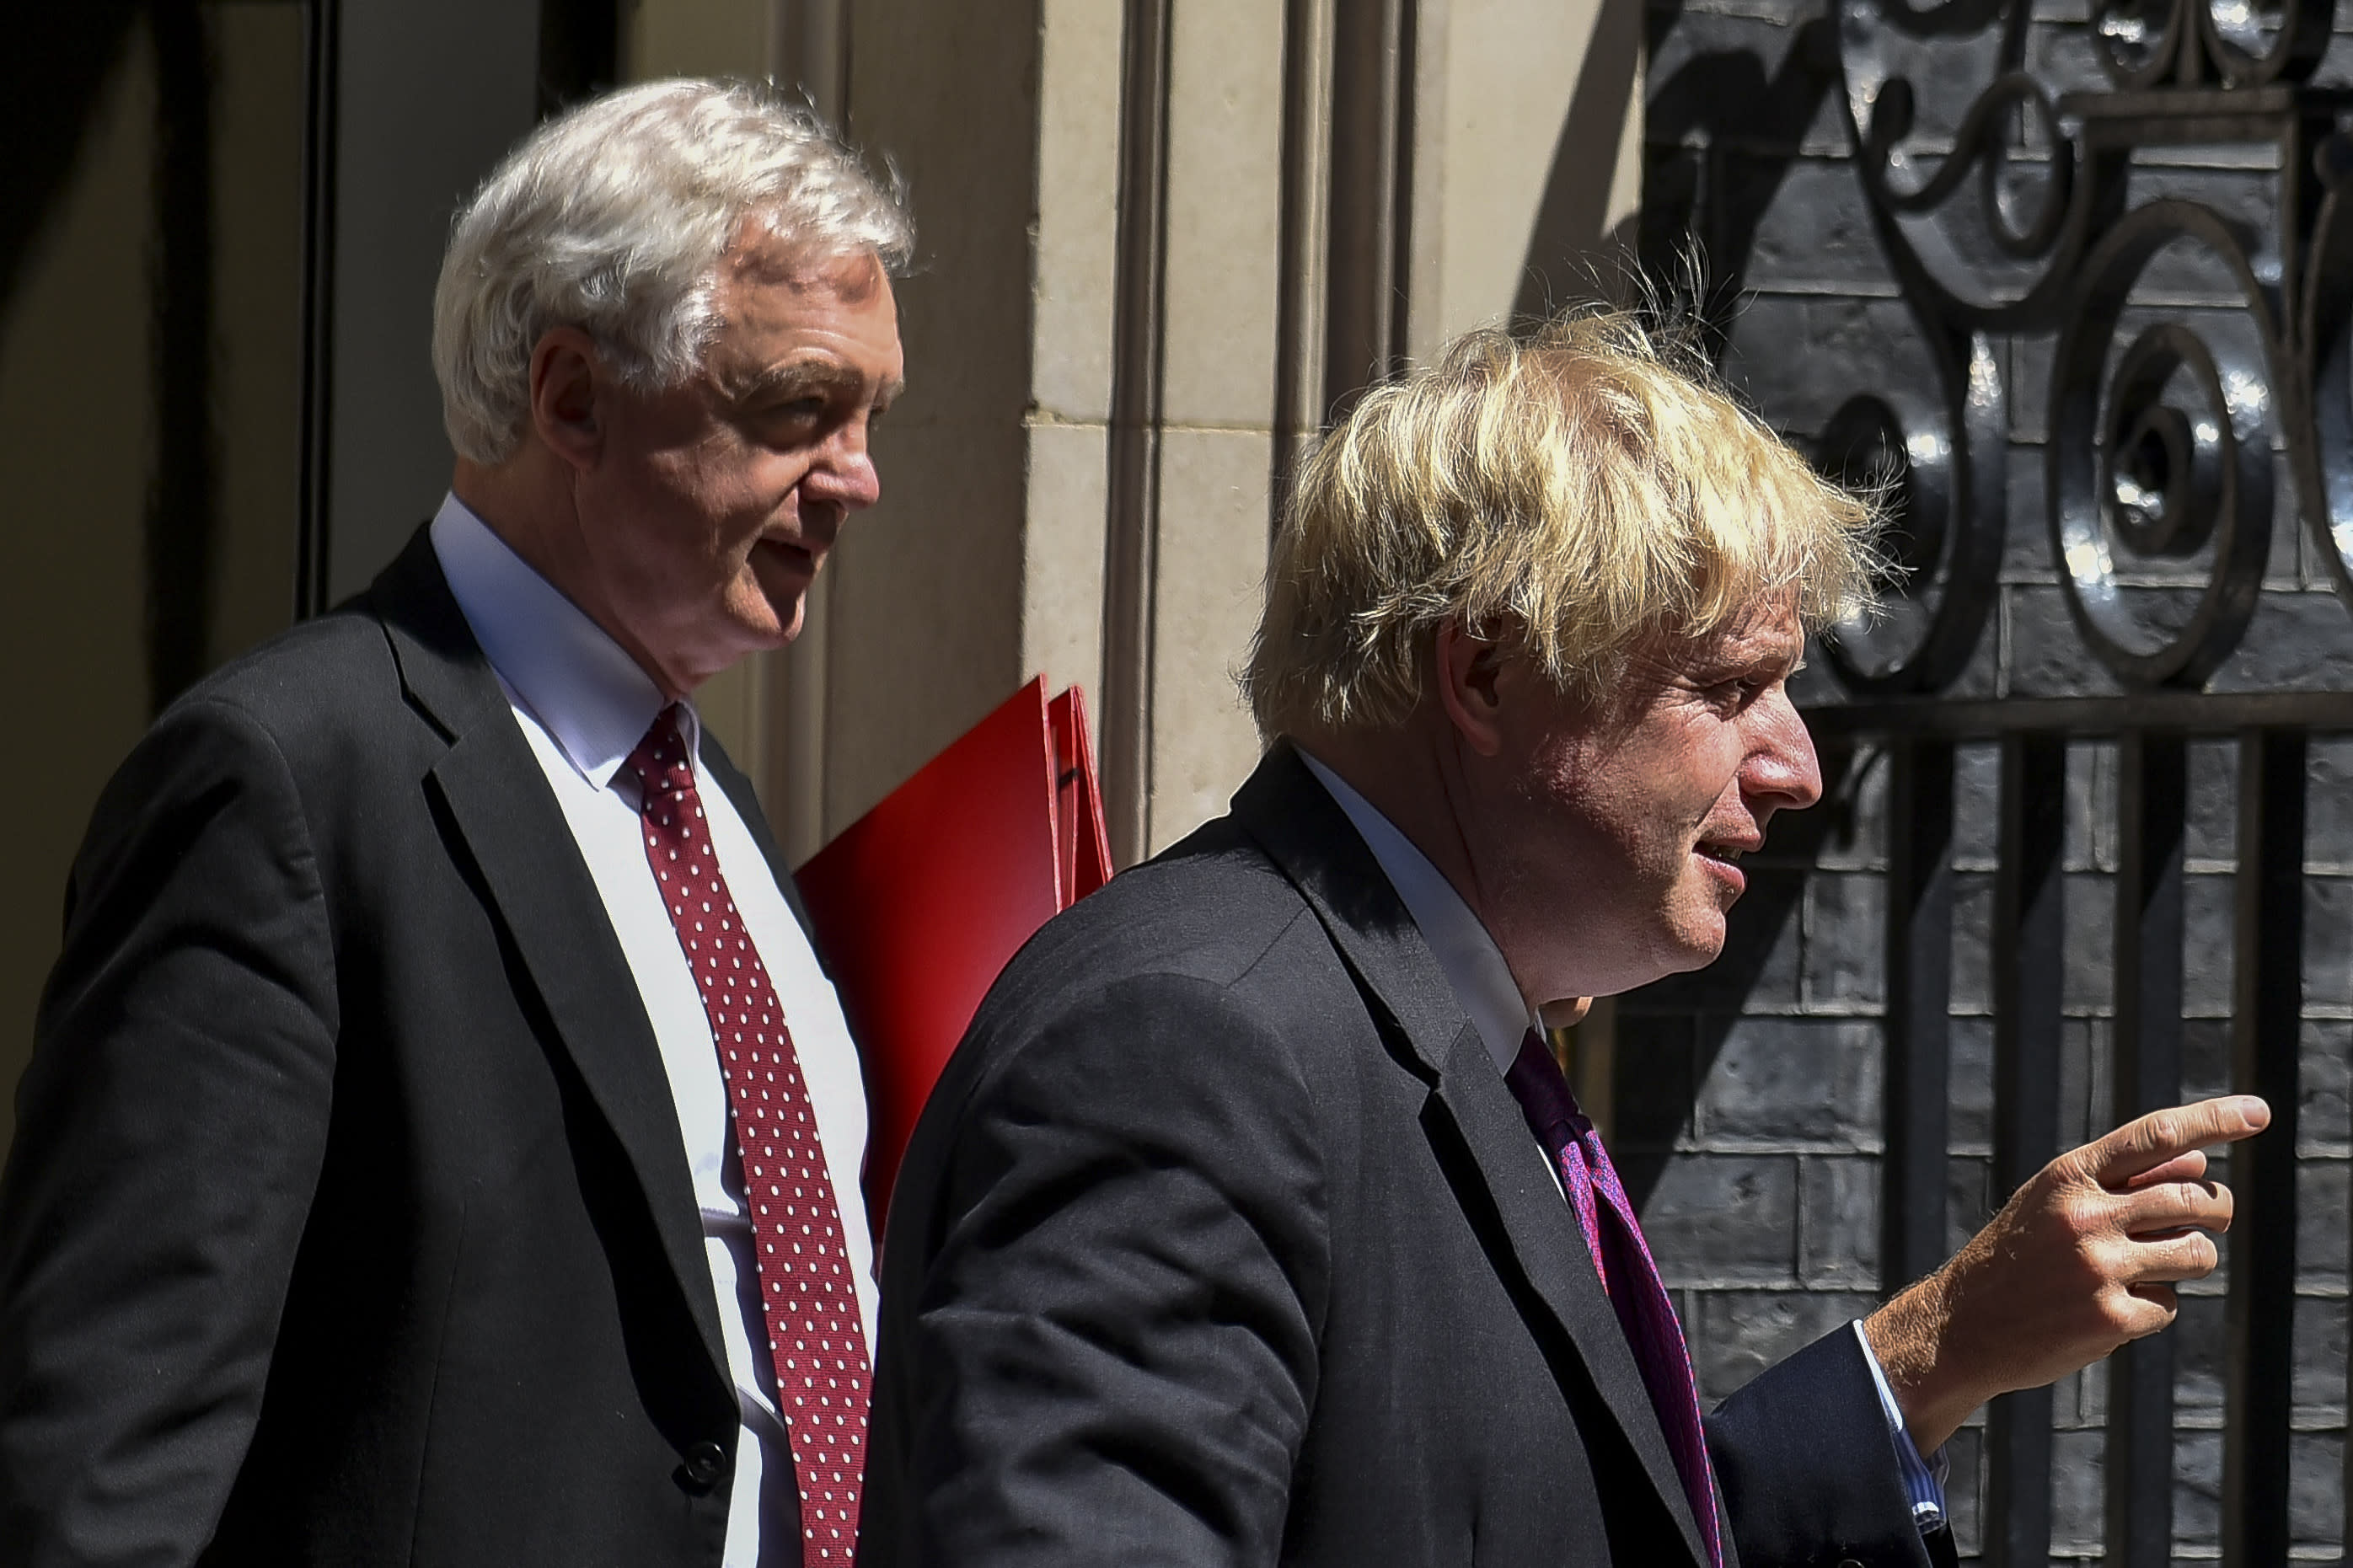 David Davis and Boris Johnson together in Downing Street More